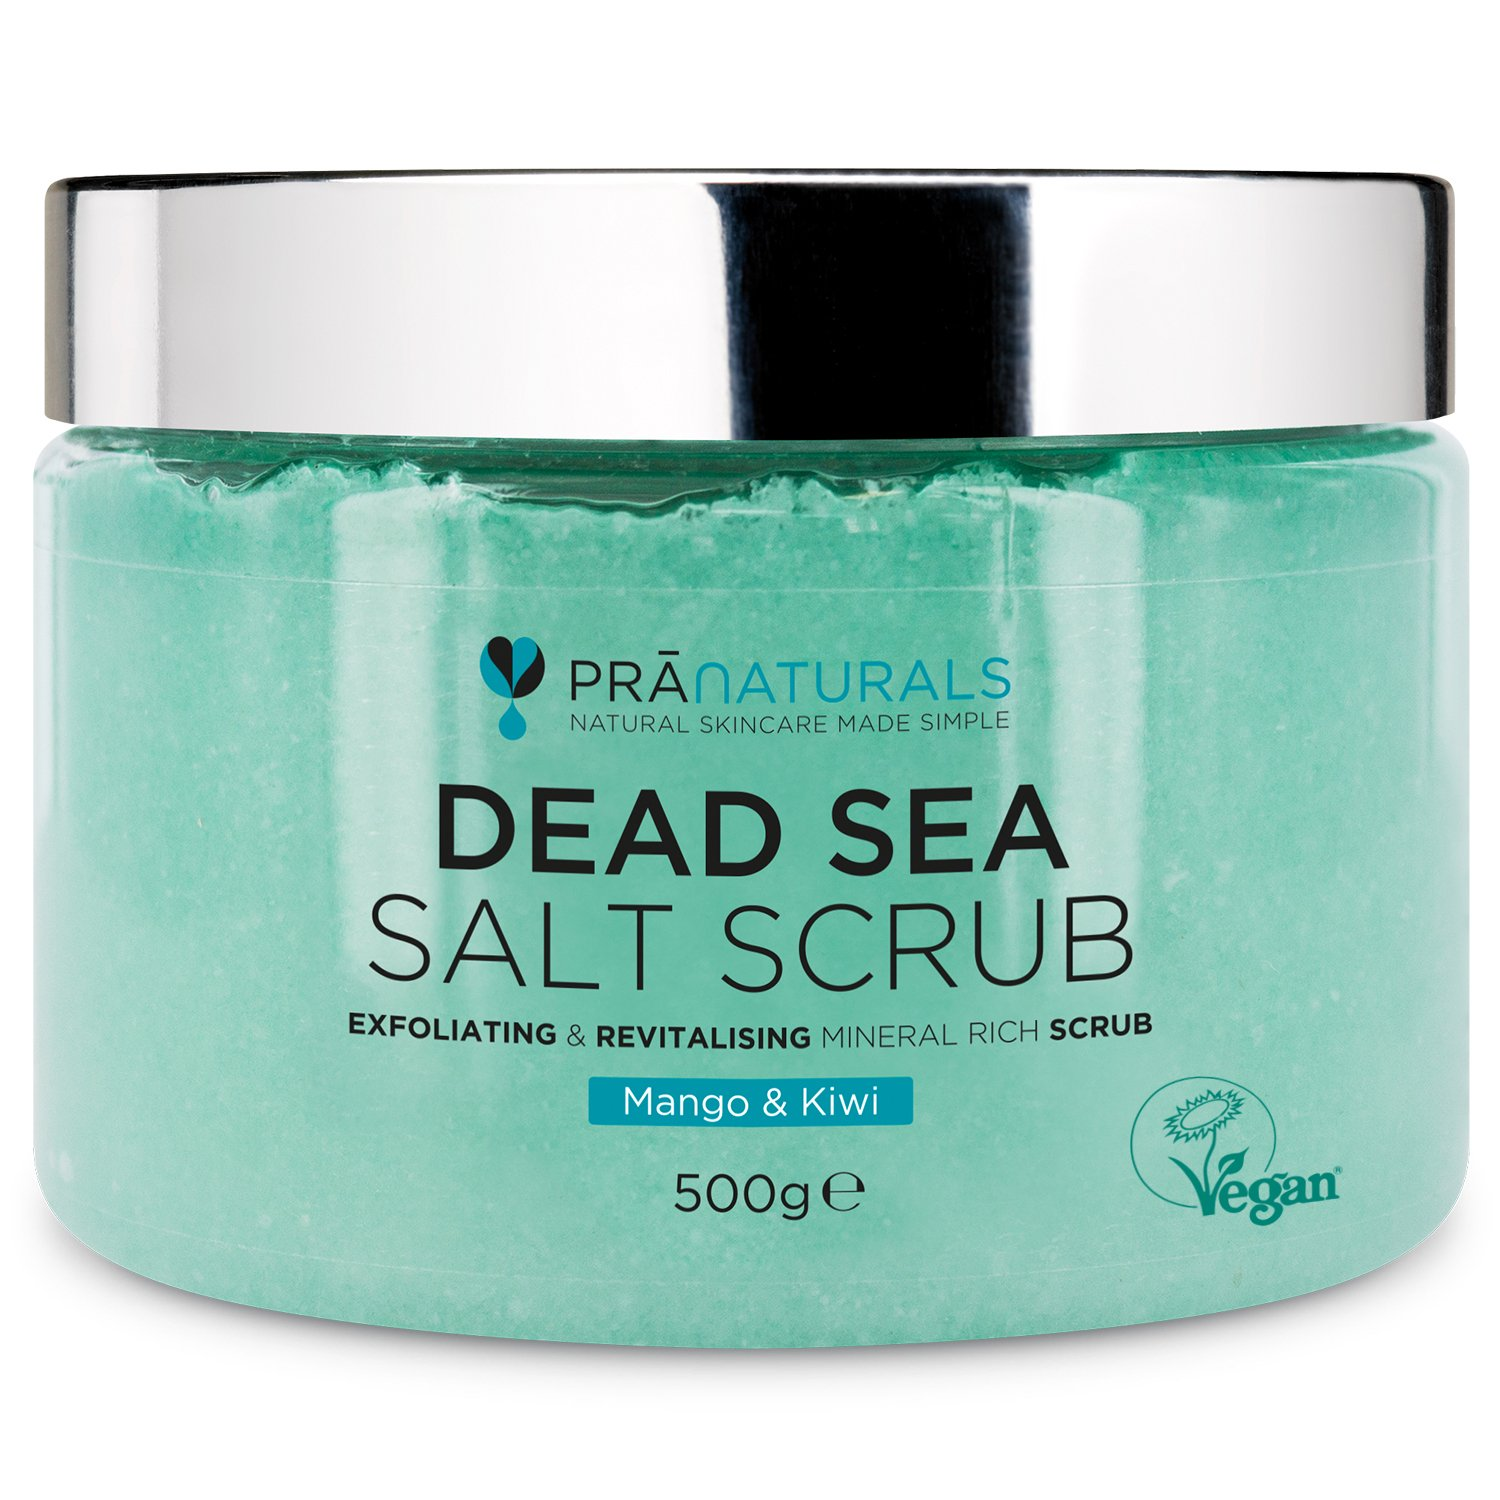 PraNaturals Revitalising Dead Sea Body Scrub 500g, 100% Organic Nourishing Skin Exfoliating Salt Scrub, Rich in Natural Minerals for All Skin Types, Blended with Mango & Kiwi Fruit Oils